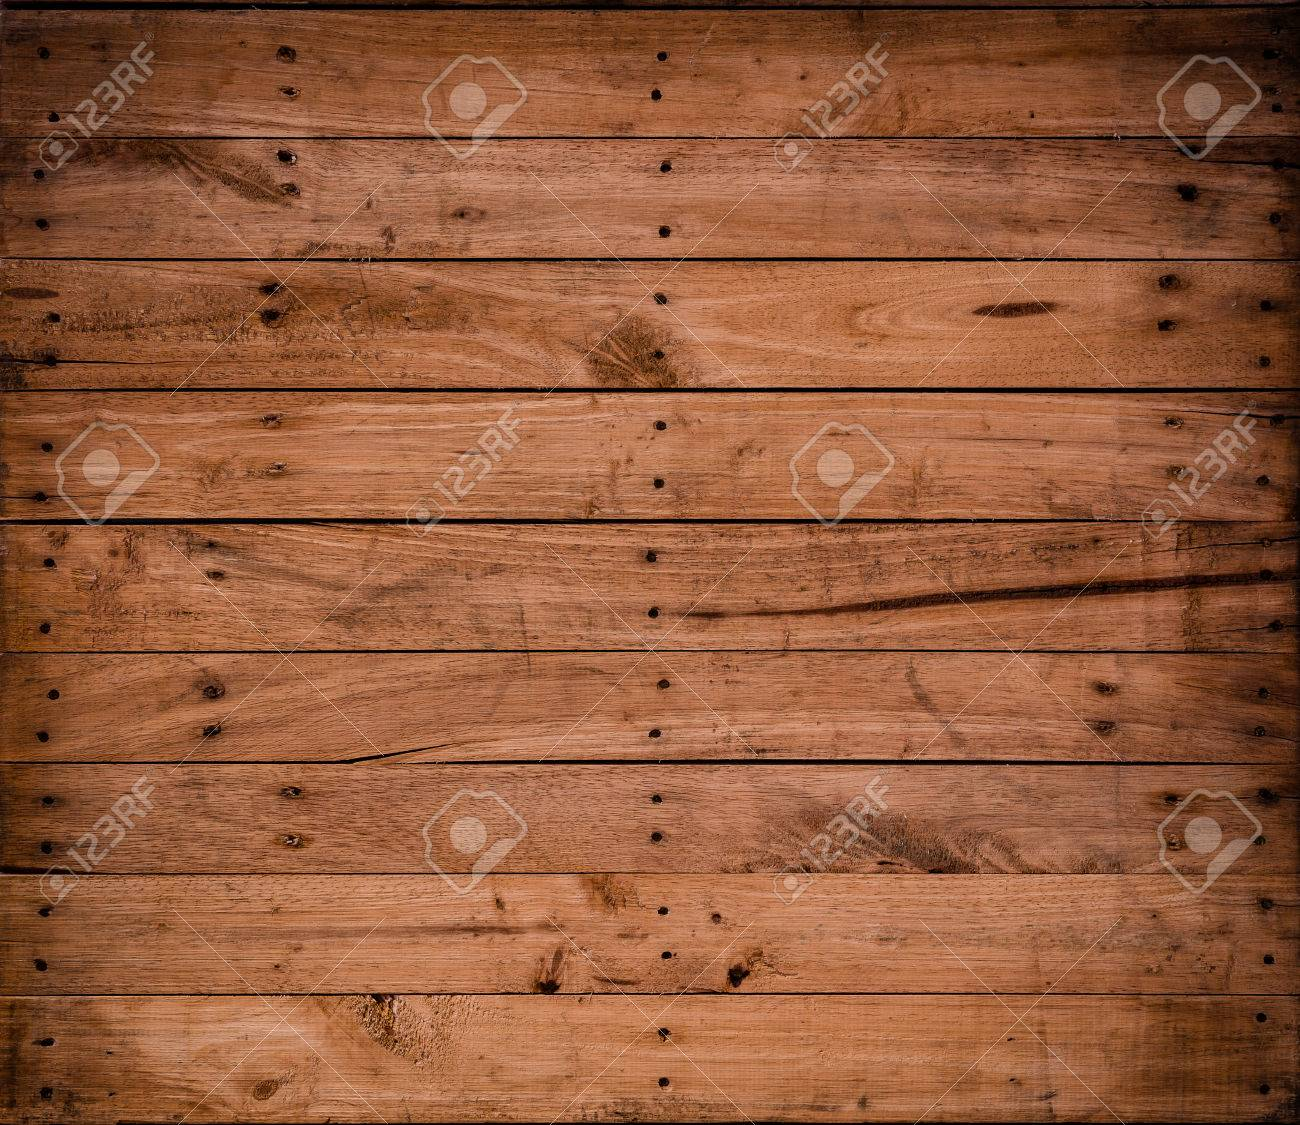 brown color nature pattern detail of pine wood decorative old